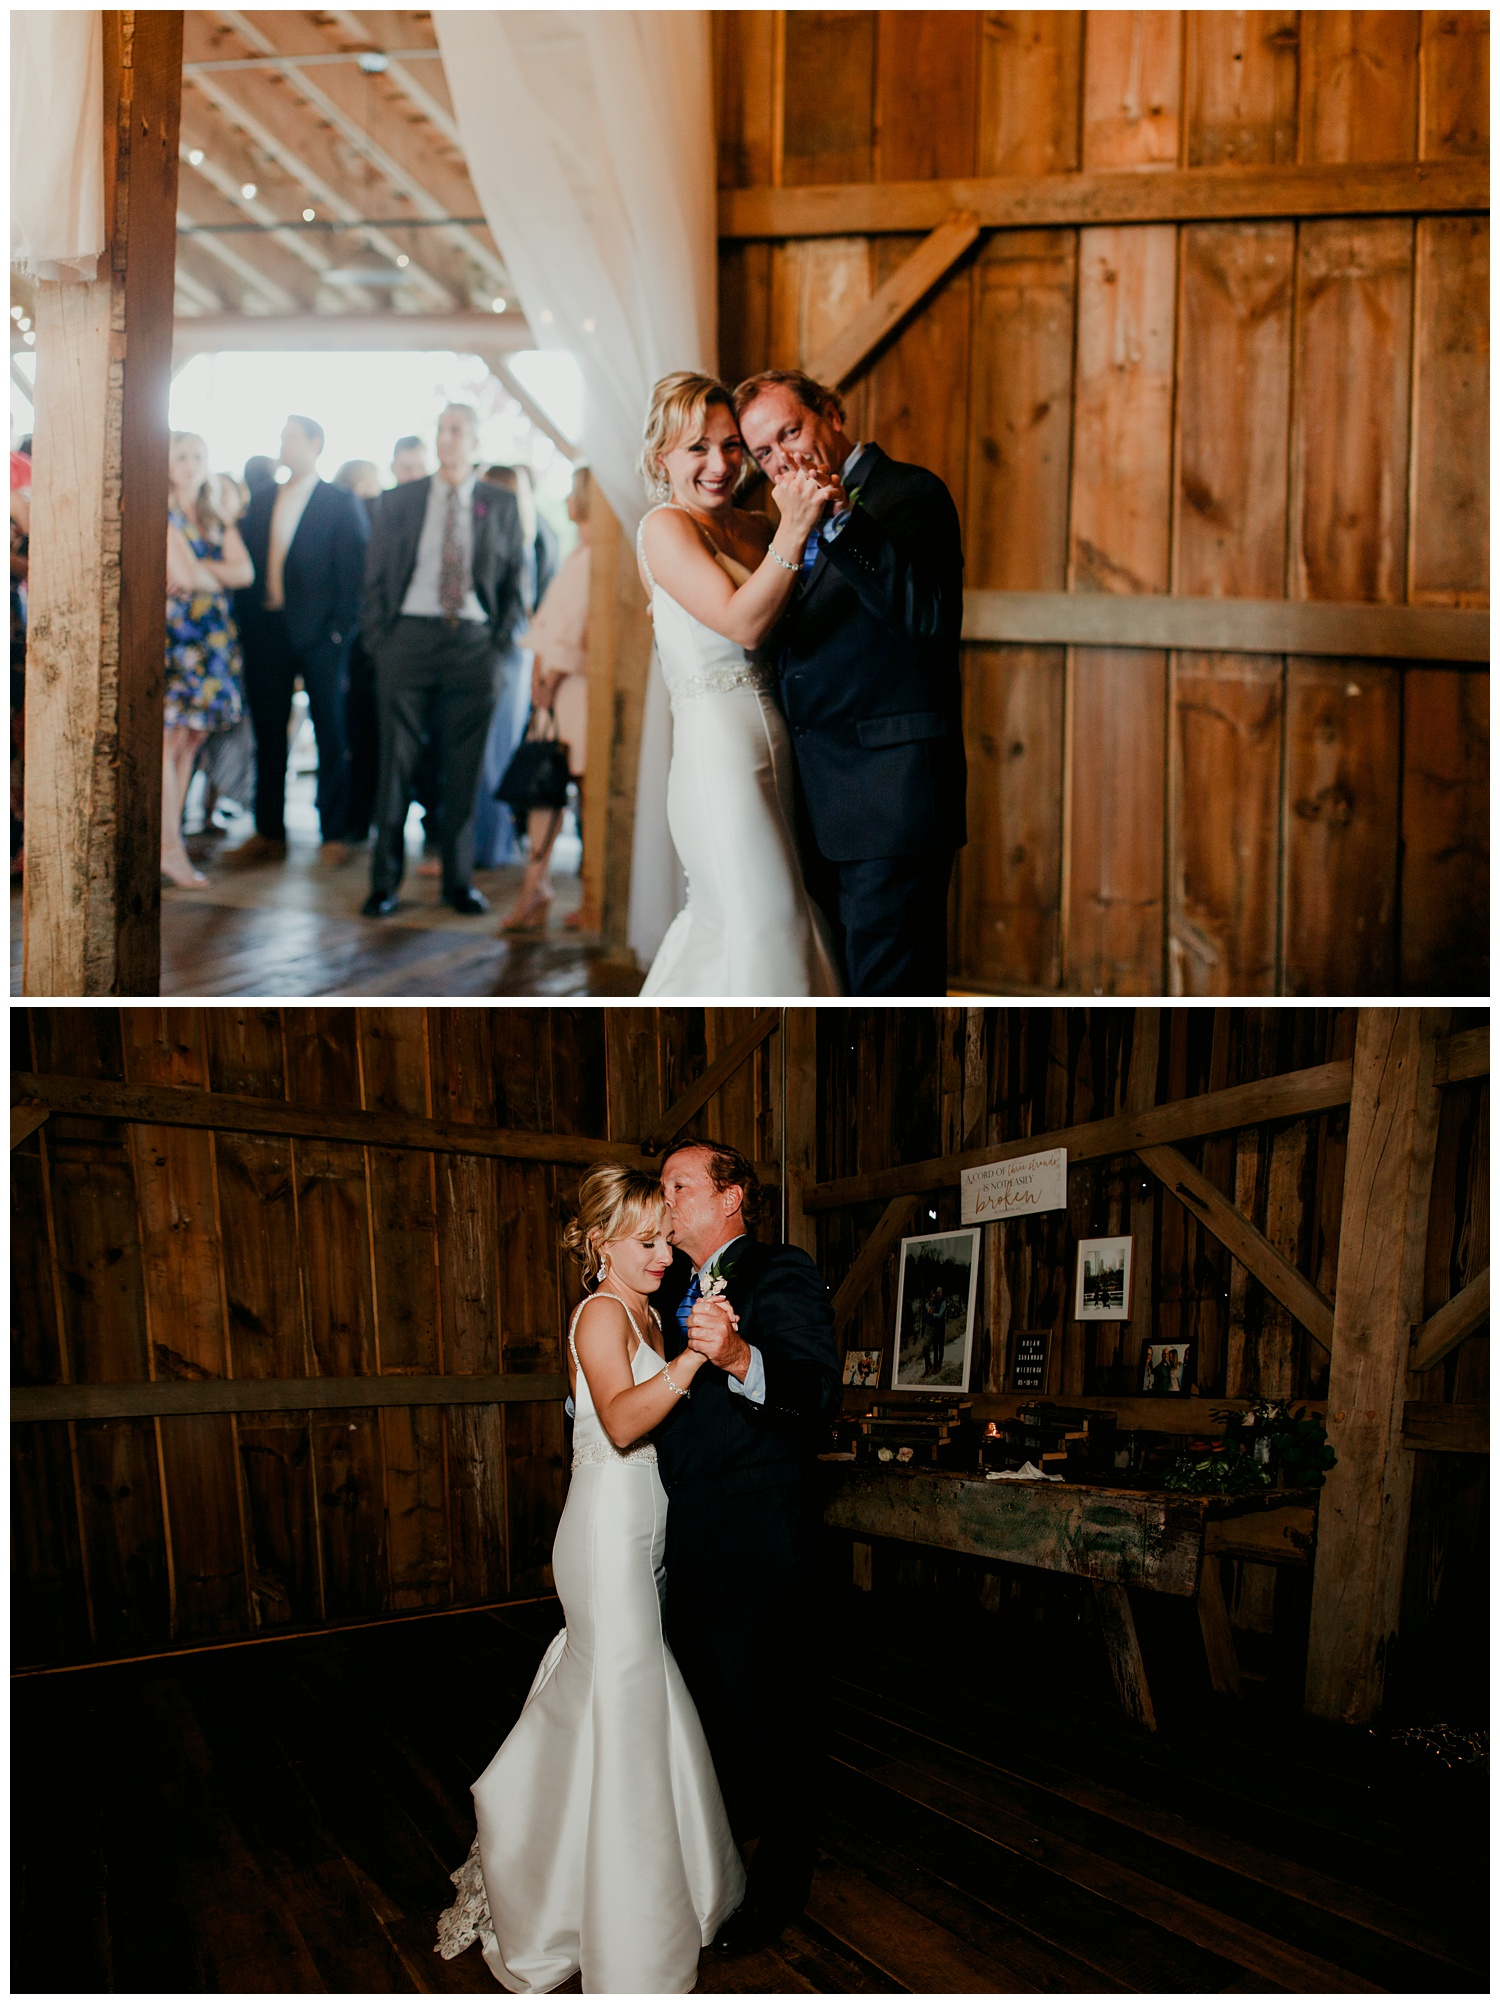 blissfulbarn threeoaks michigan wedding photography journeymandistillery125.jpg